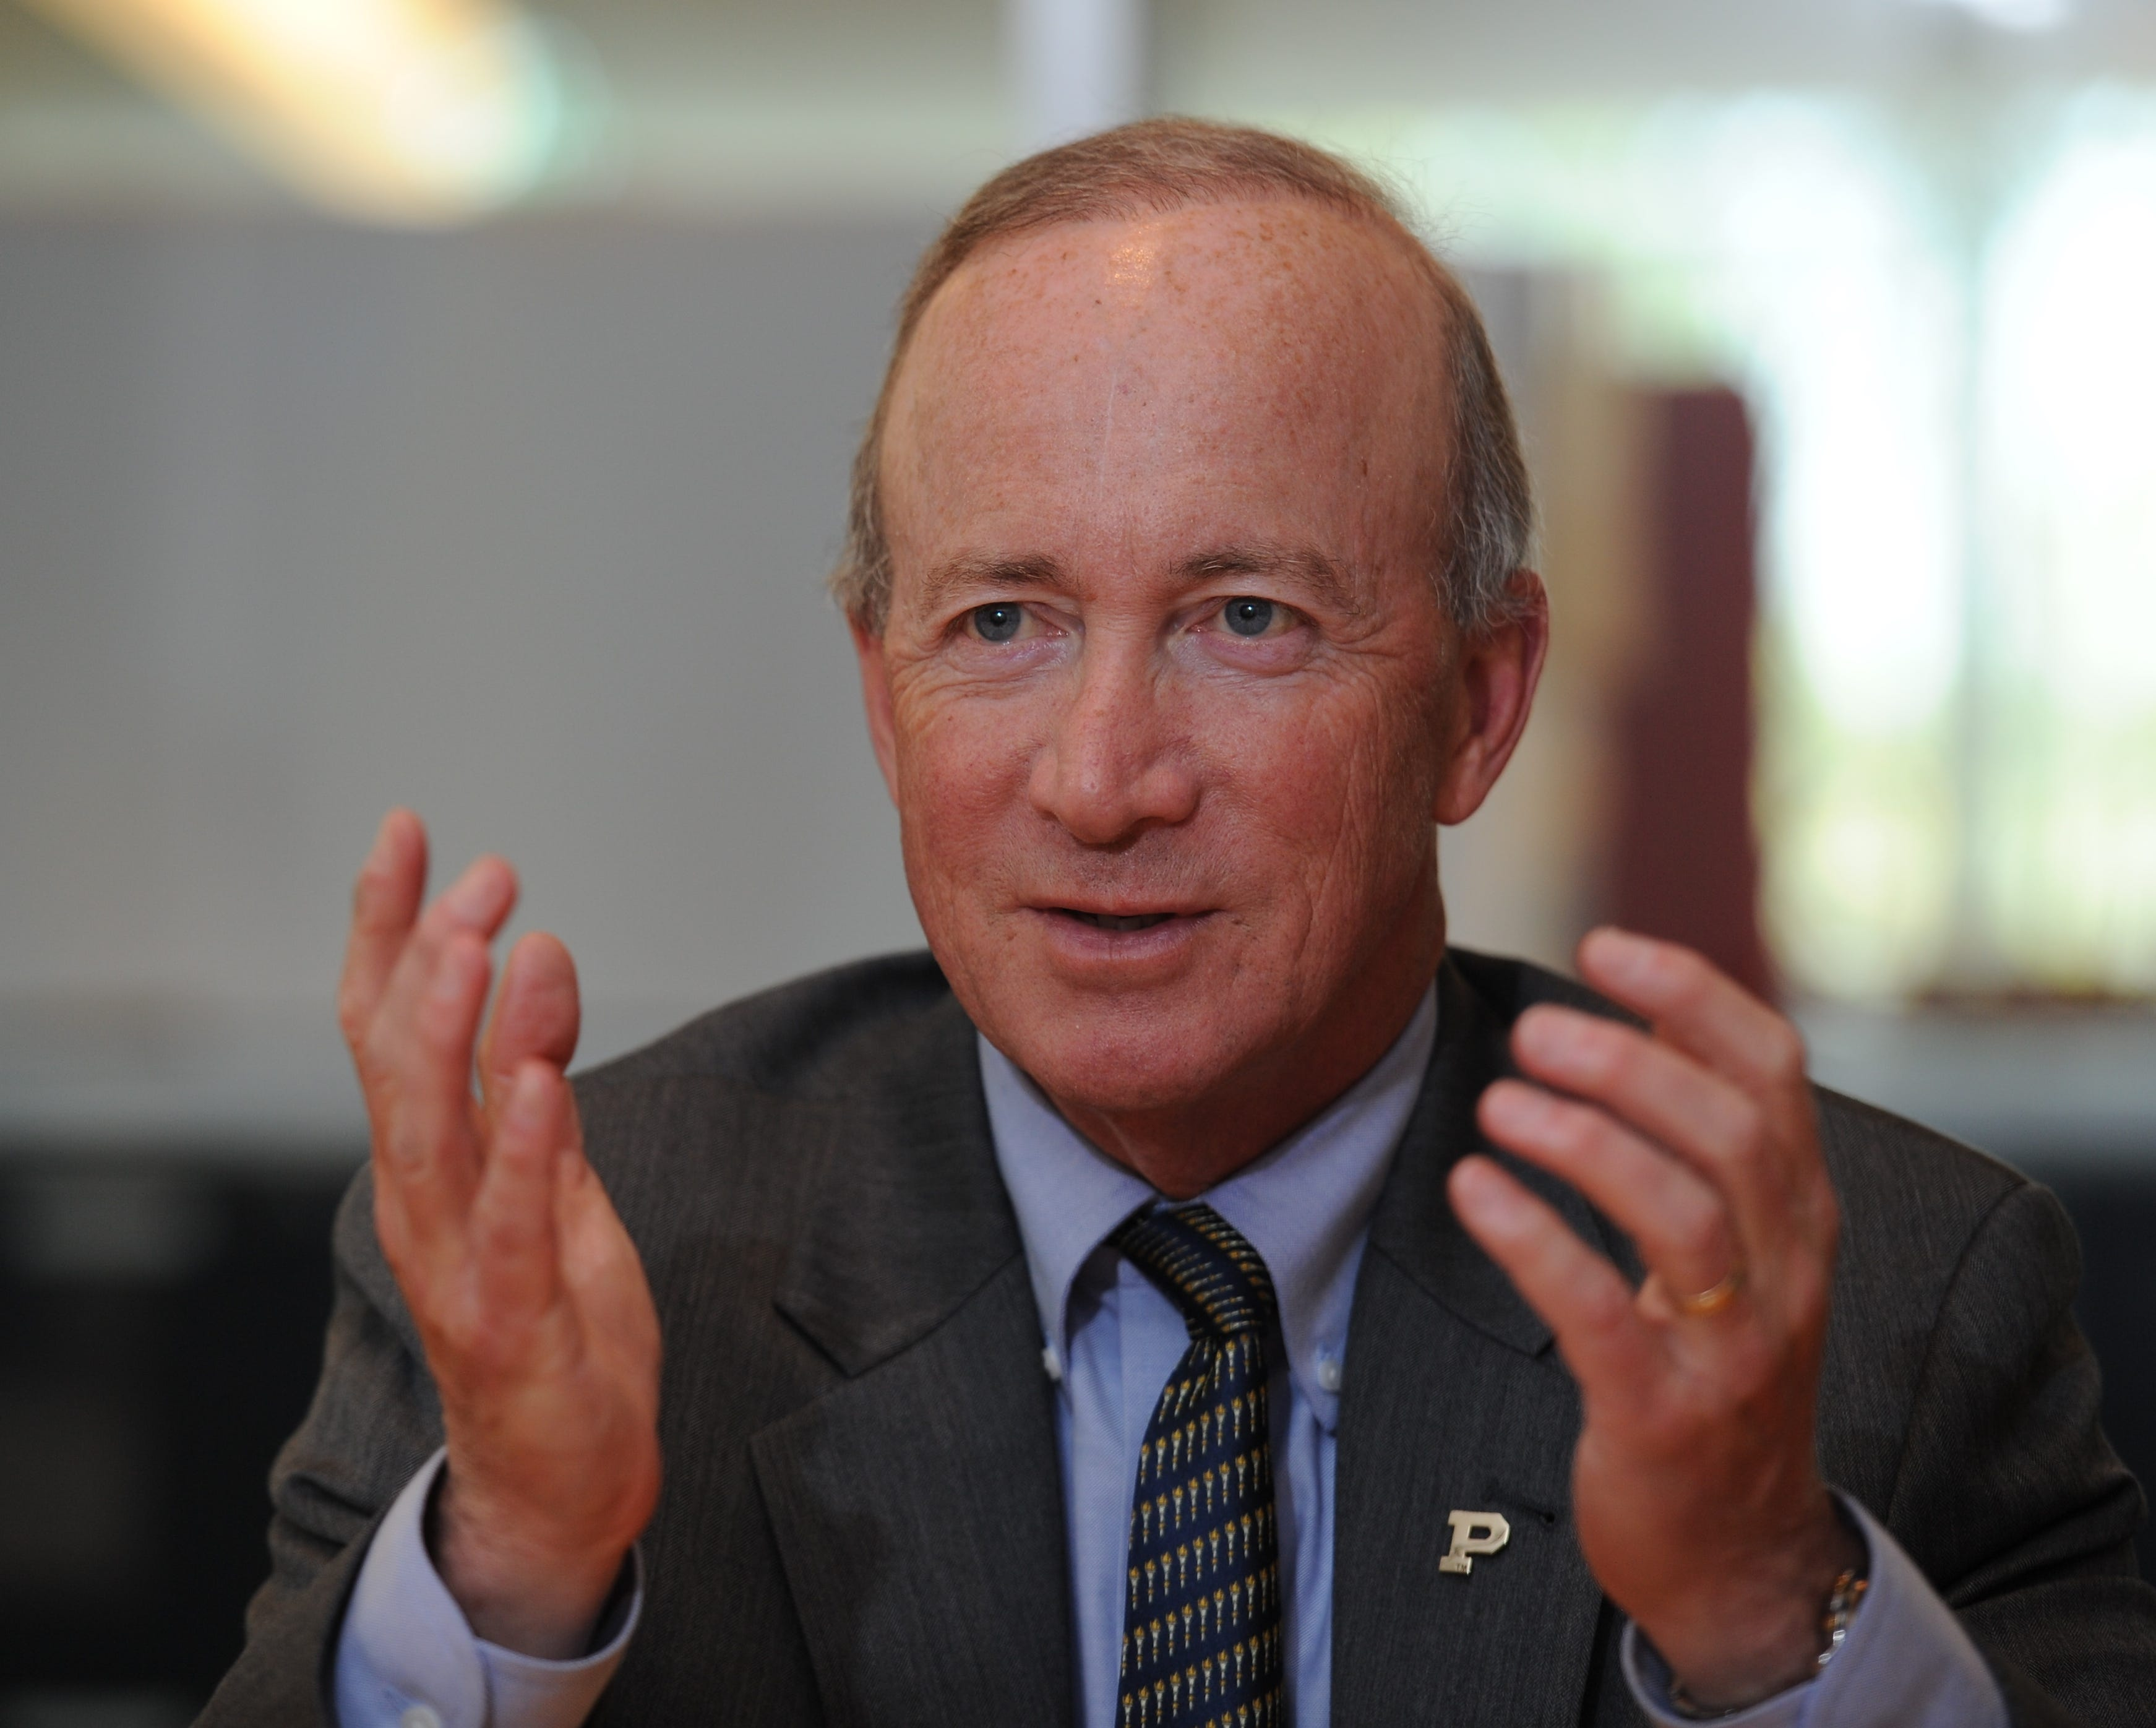 To Mitch Daniels, president of Purdue, in-person college instruction is like a civic duty.